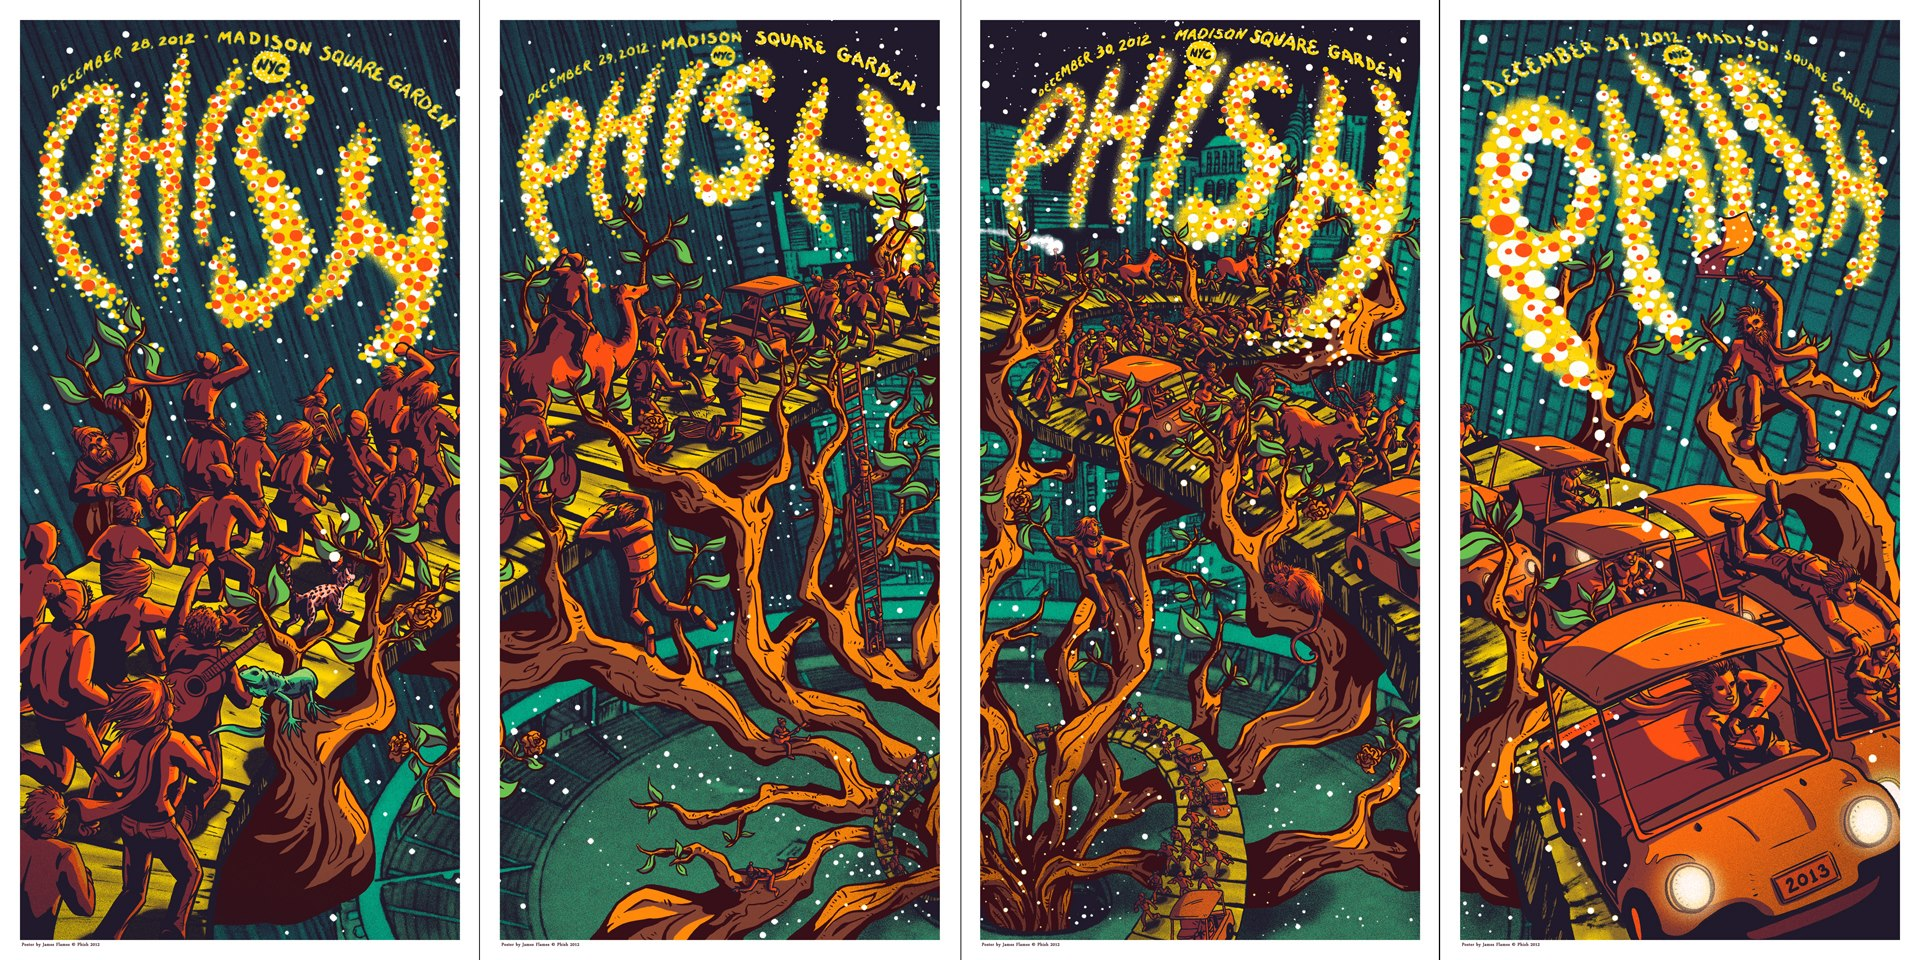 """Phish – New York, NY 2012"""" by James Flames 